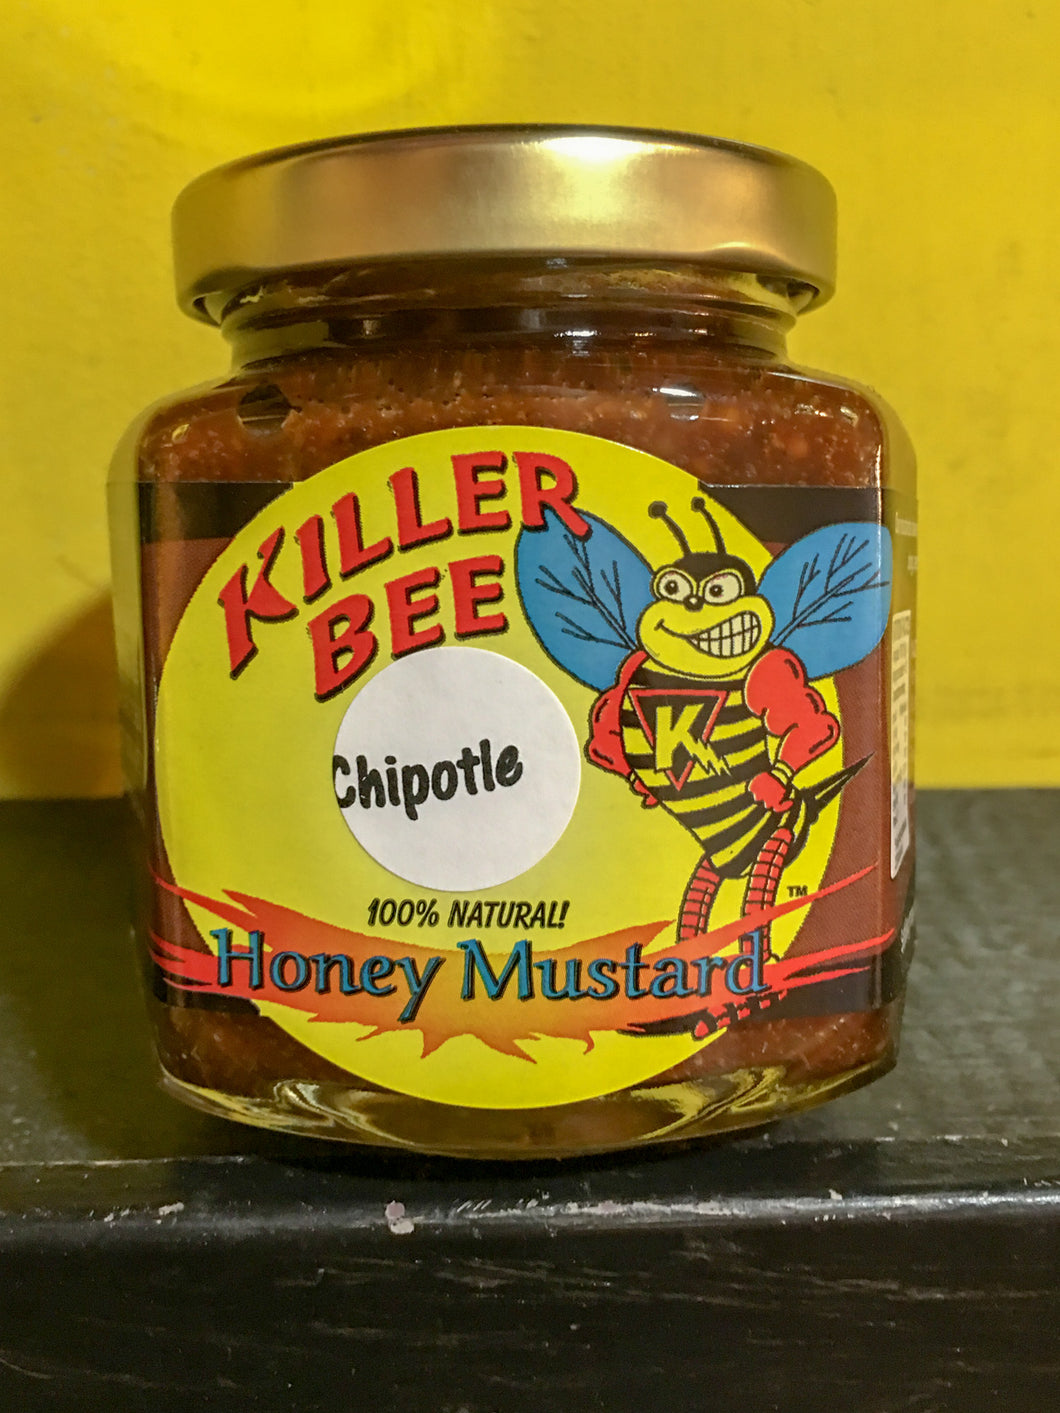 Whole Seed Chipotle Honey Mustard